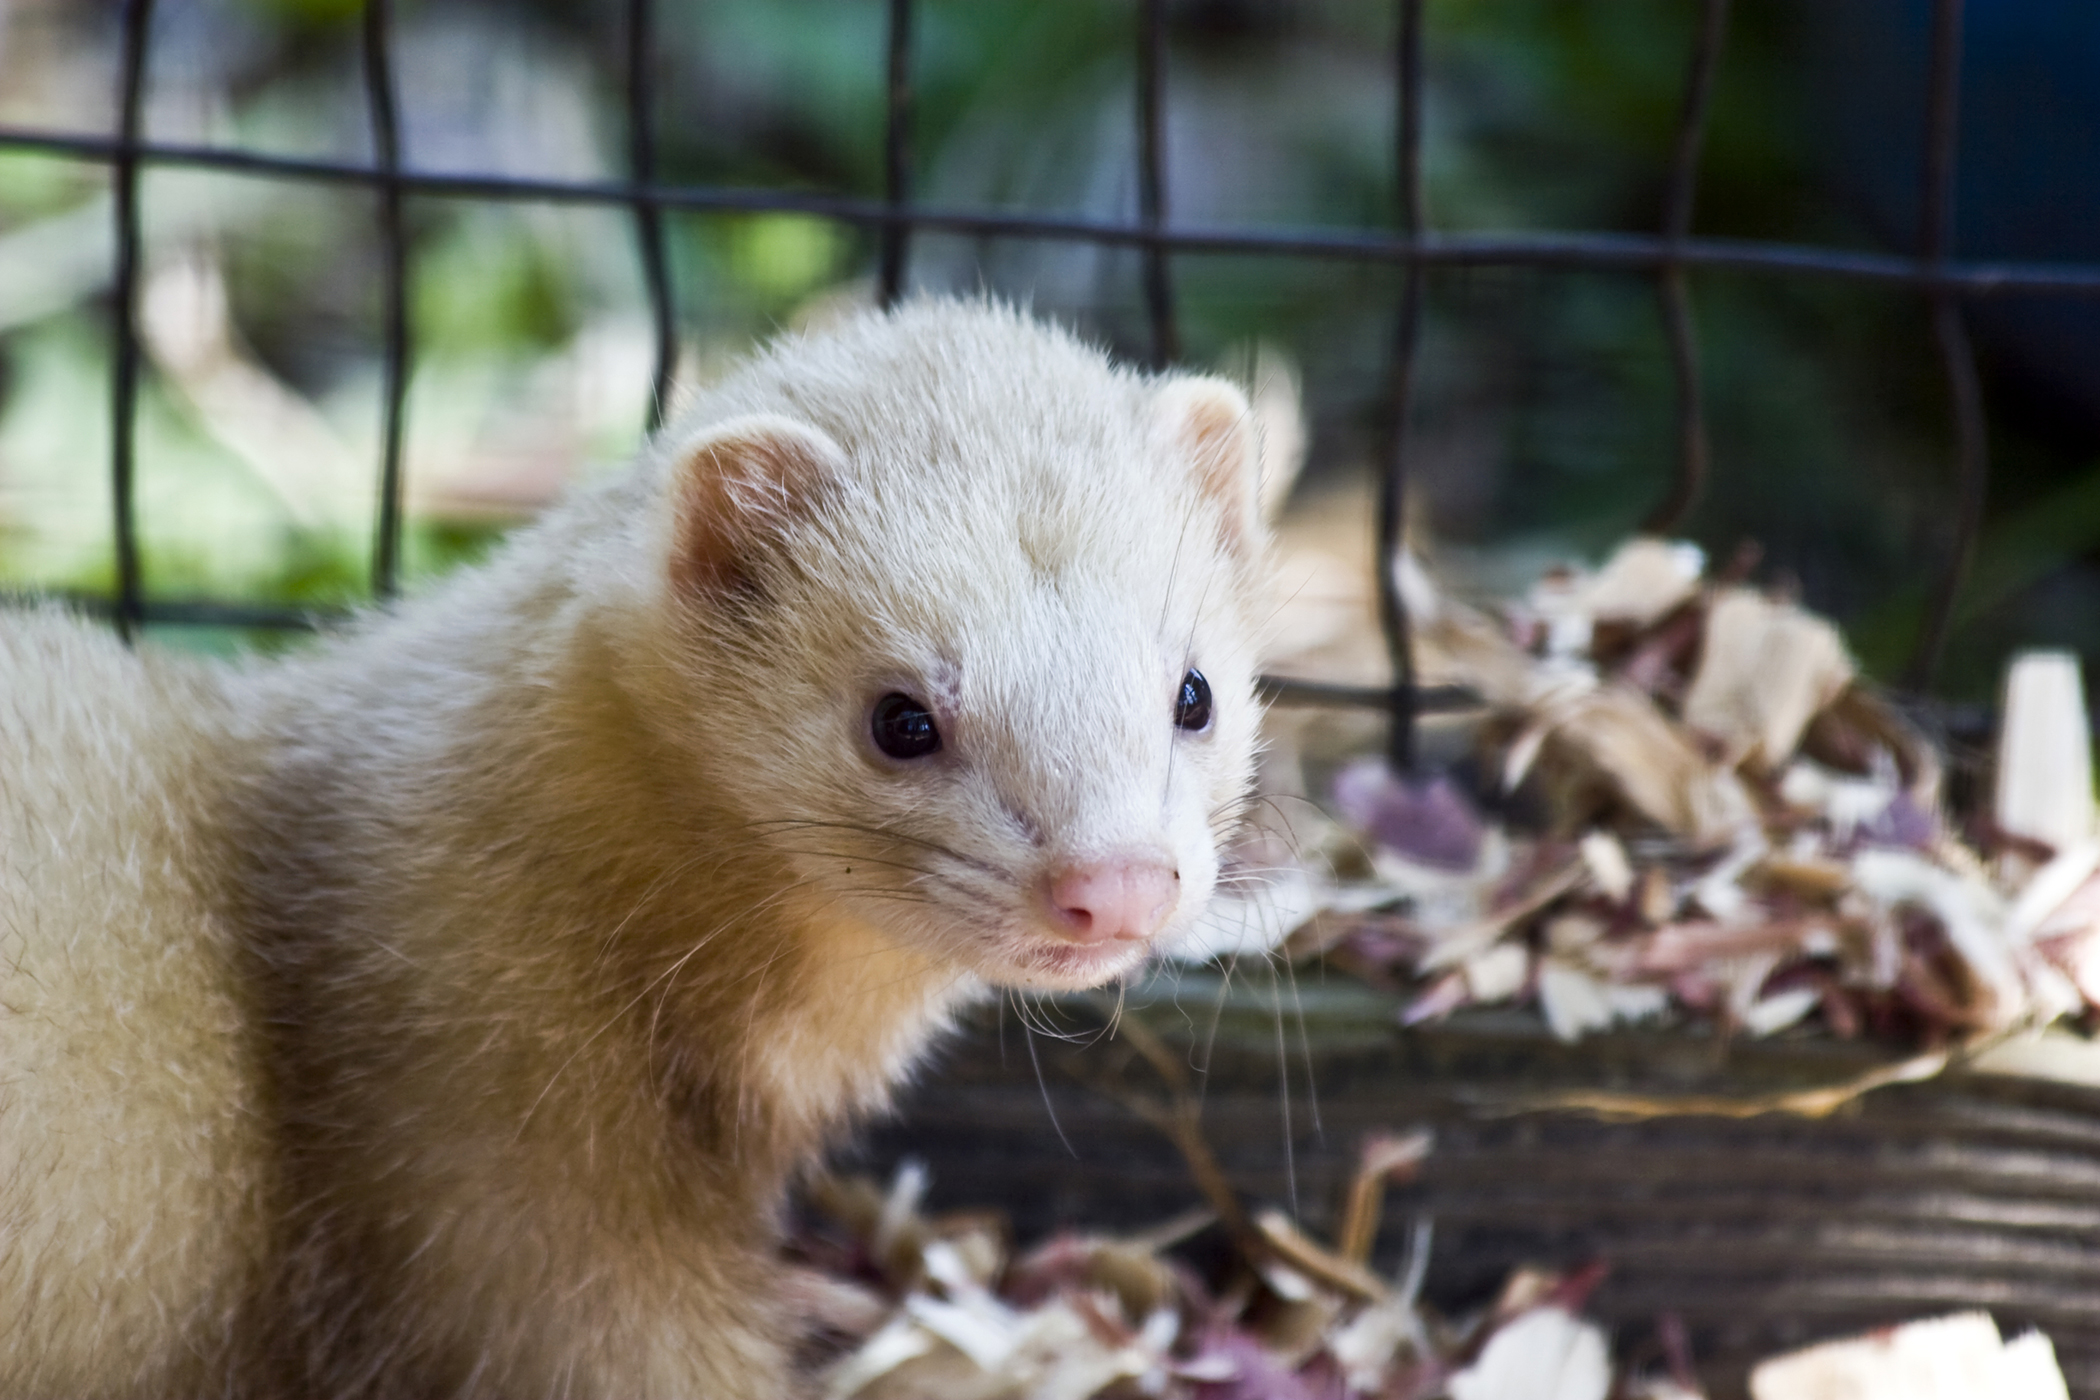 Lower Urinary Tract Infection in Ferrets